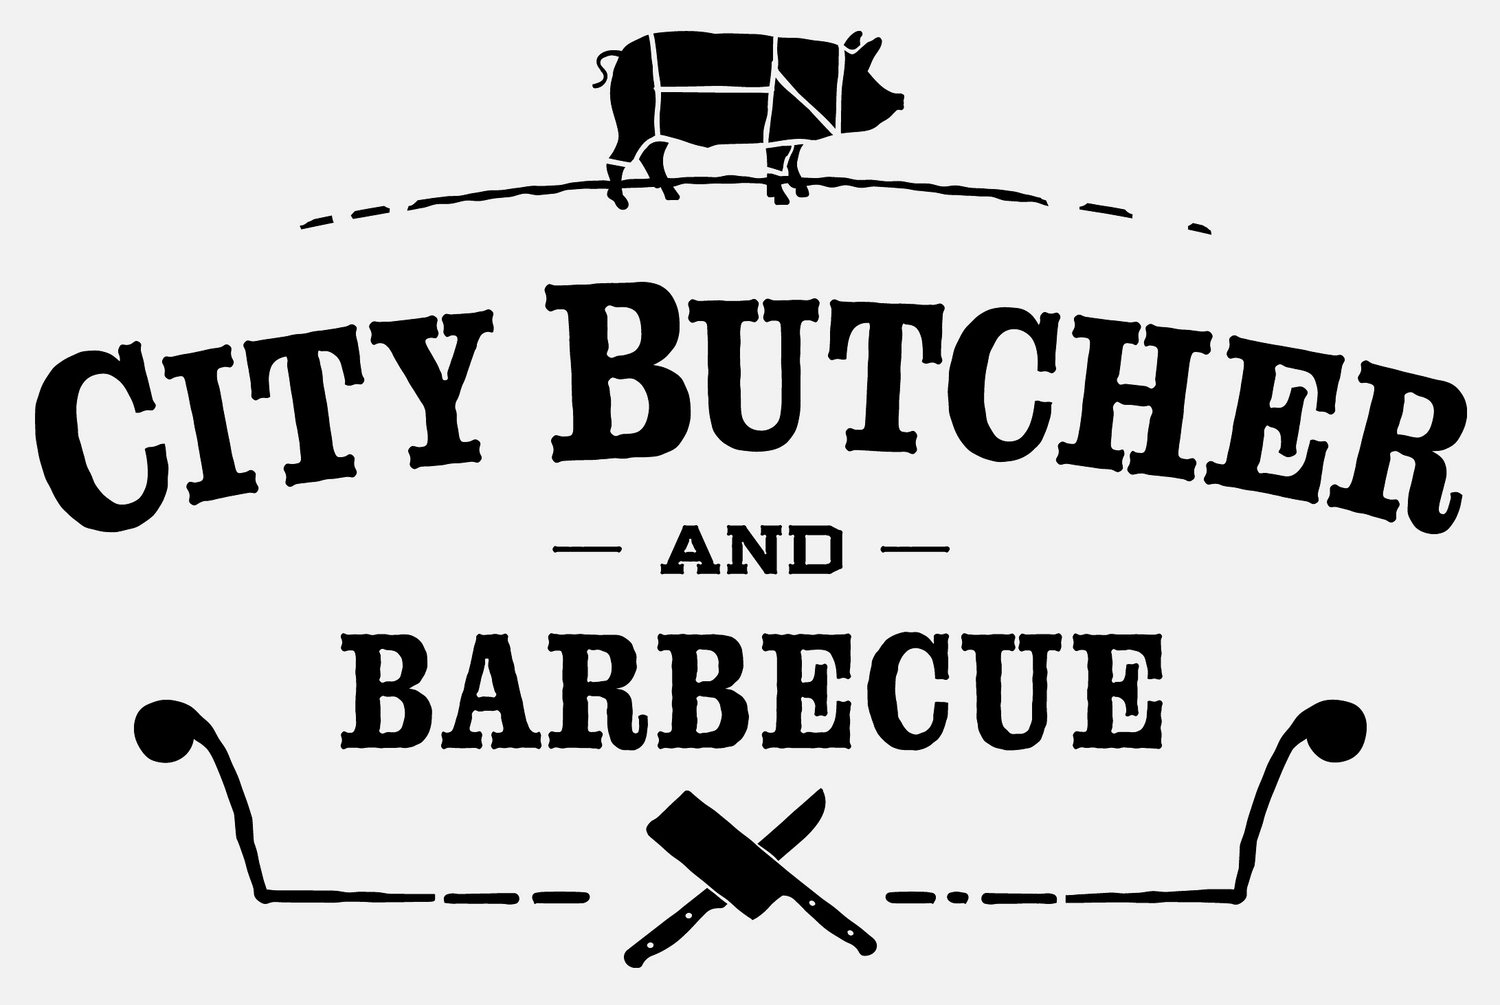 City Butcher and Barbecue